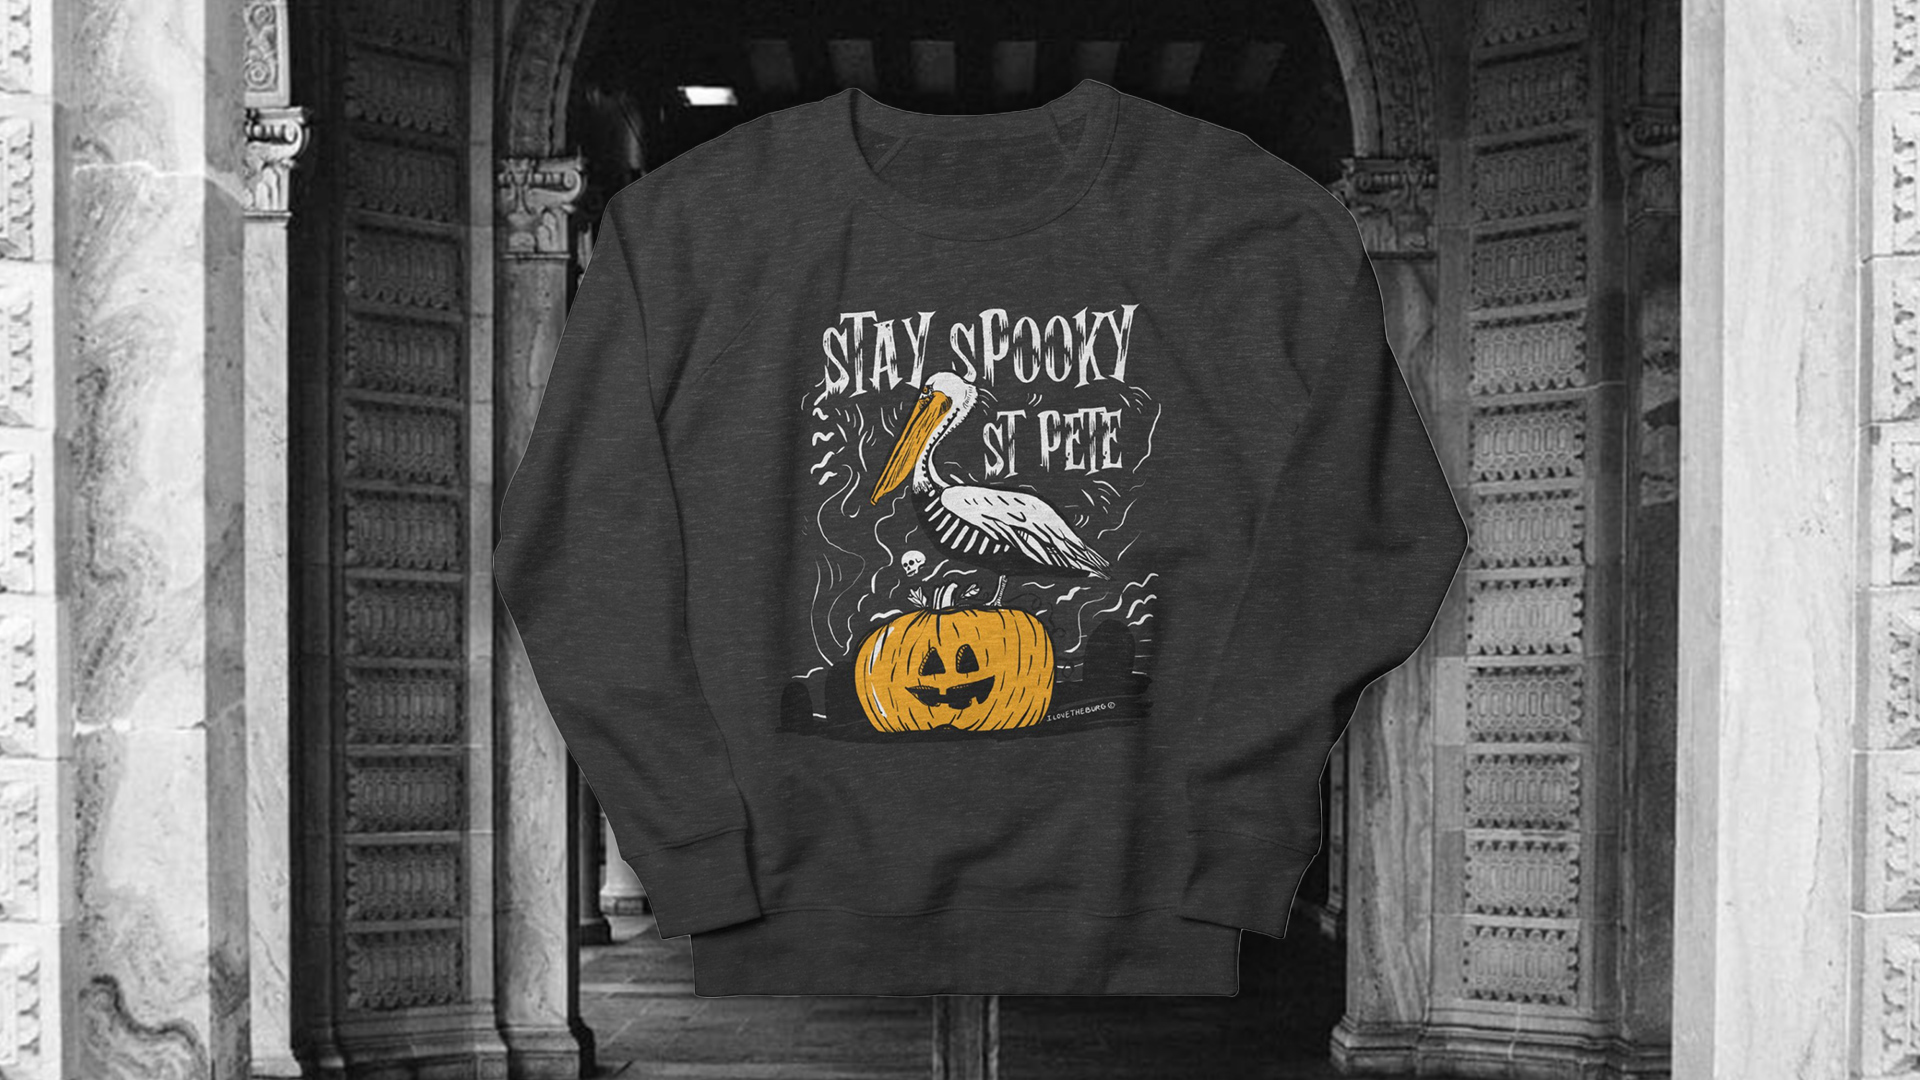 stay spooky st pete t-shirt design and pelican on pumpkin design - black and white post office background